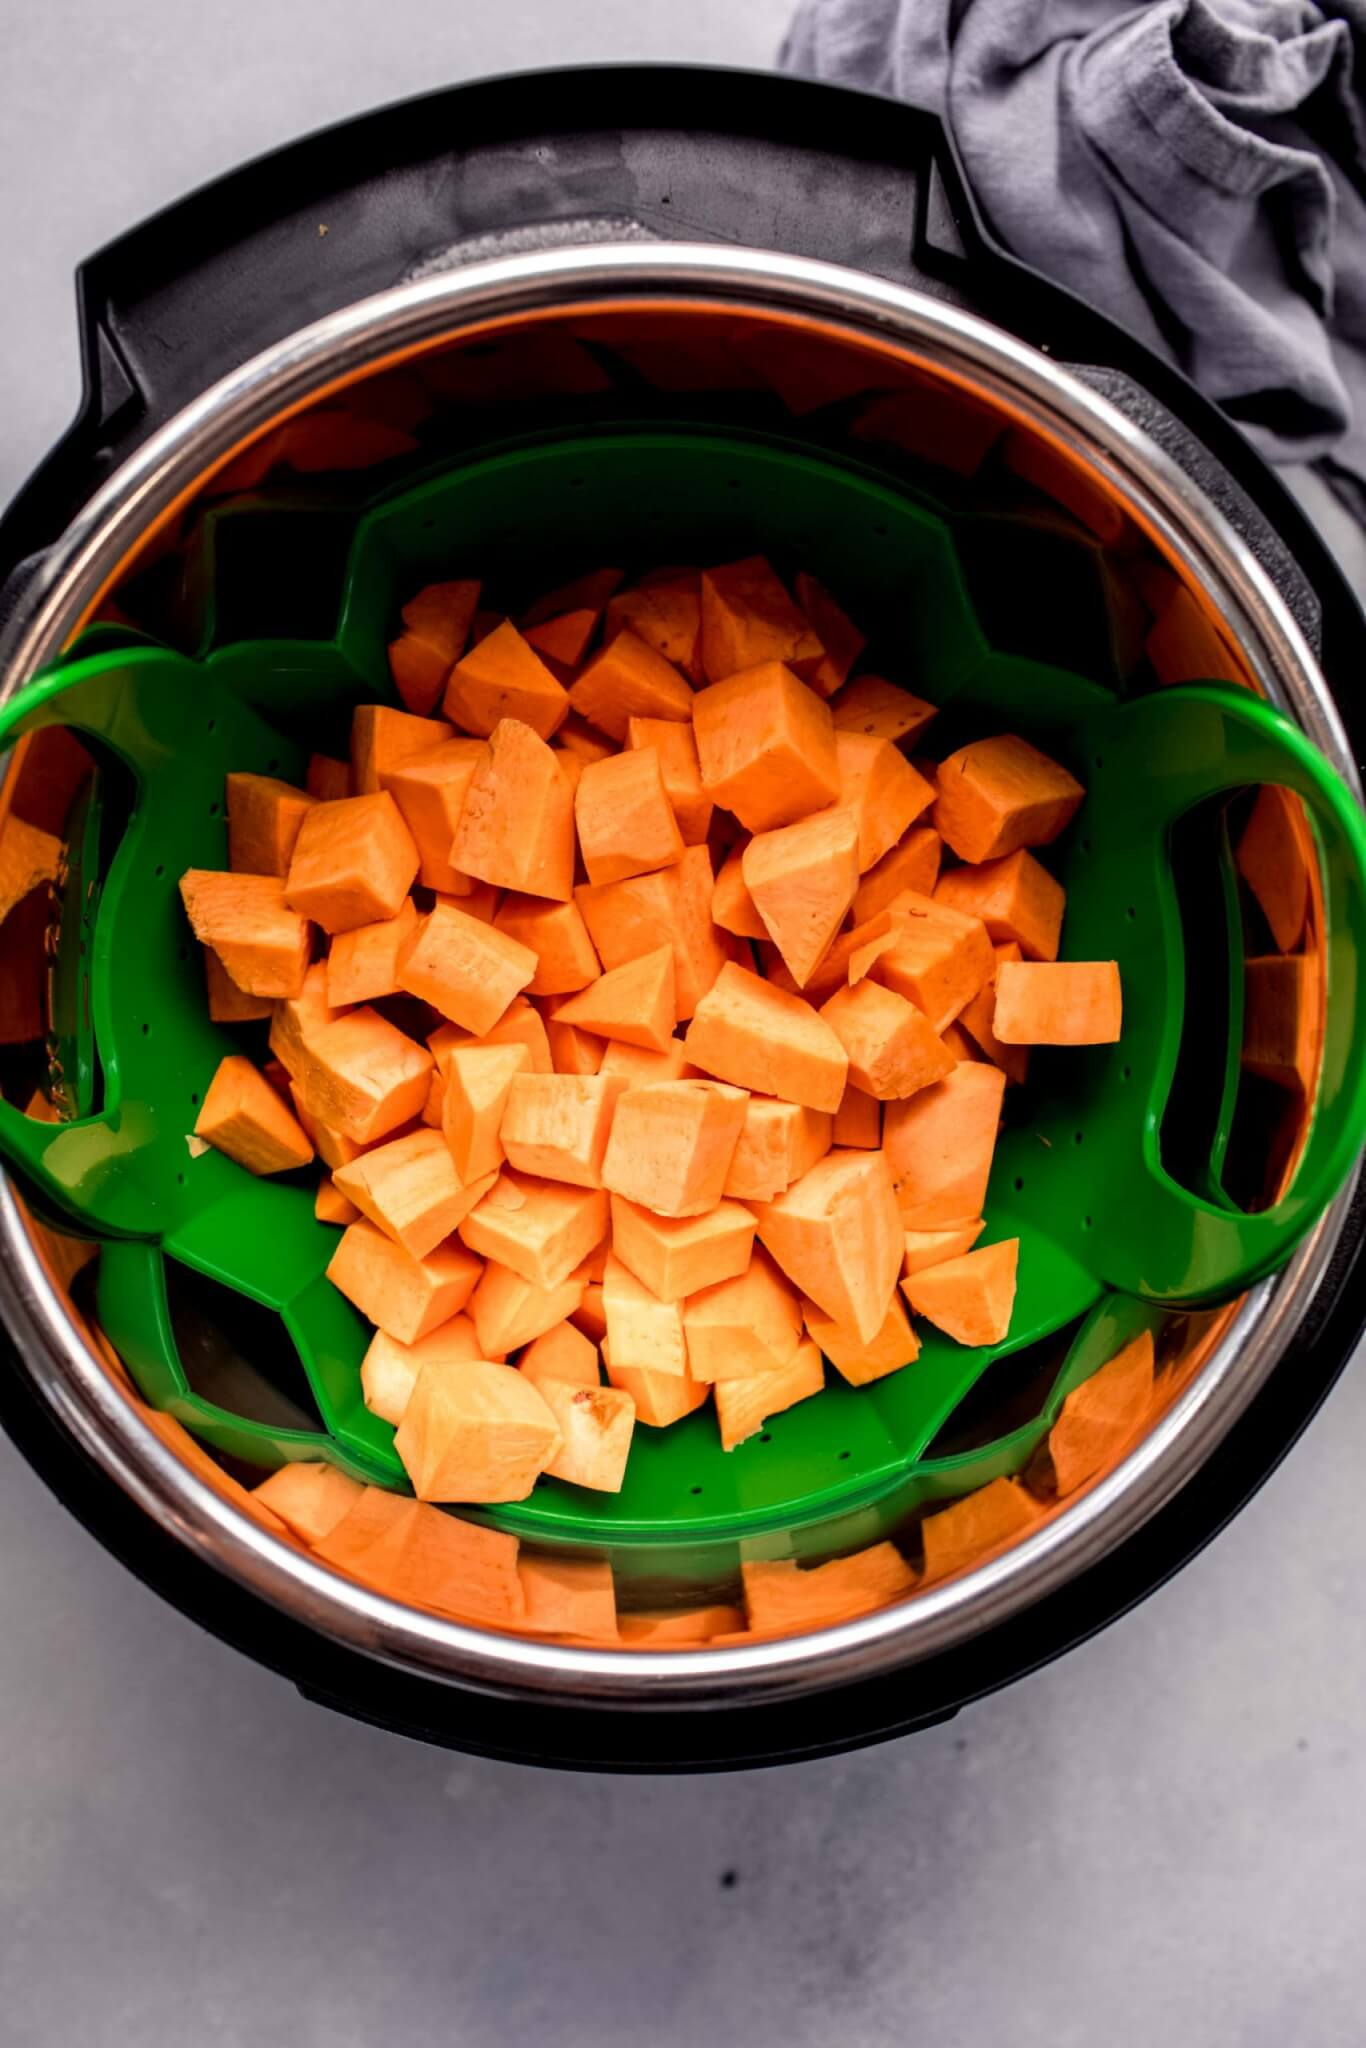 Cubes of sweet potato in instant pot.